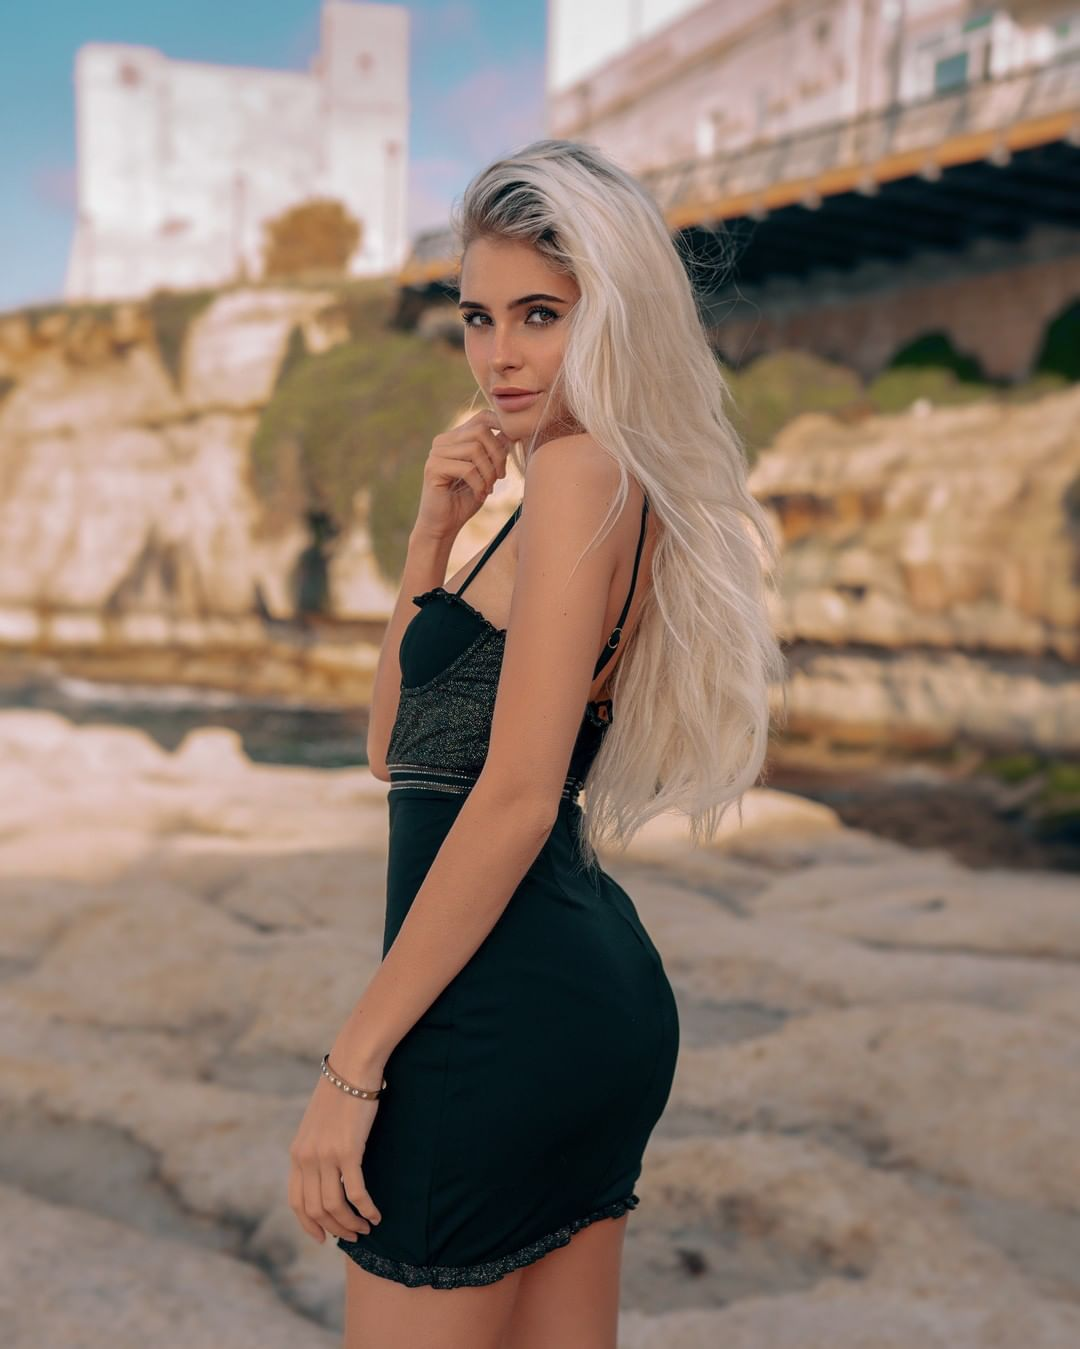 ninni-belle-Wallpapers-Insta-Biography-11